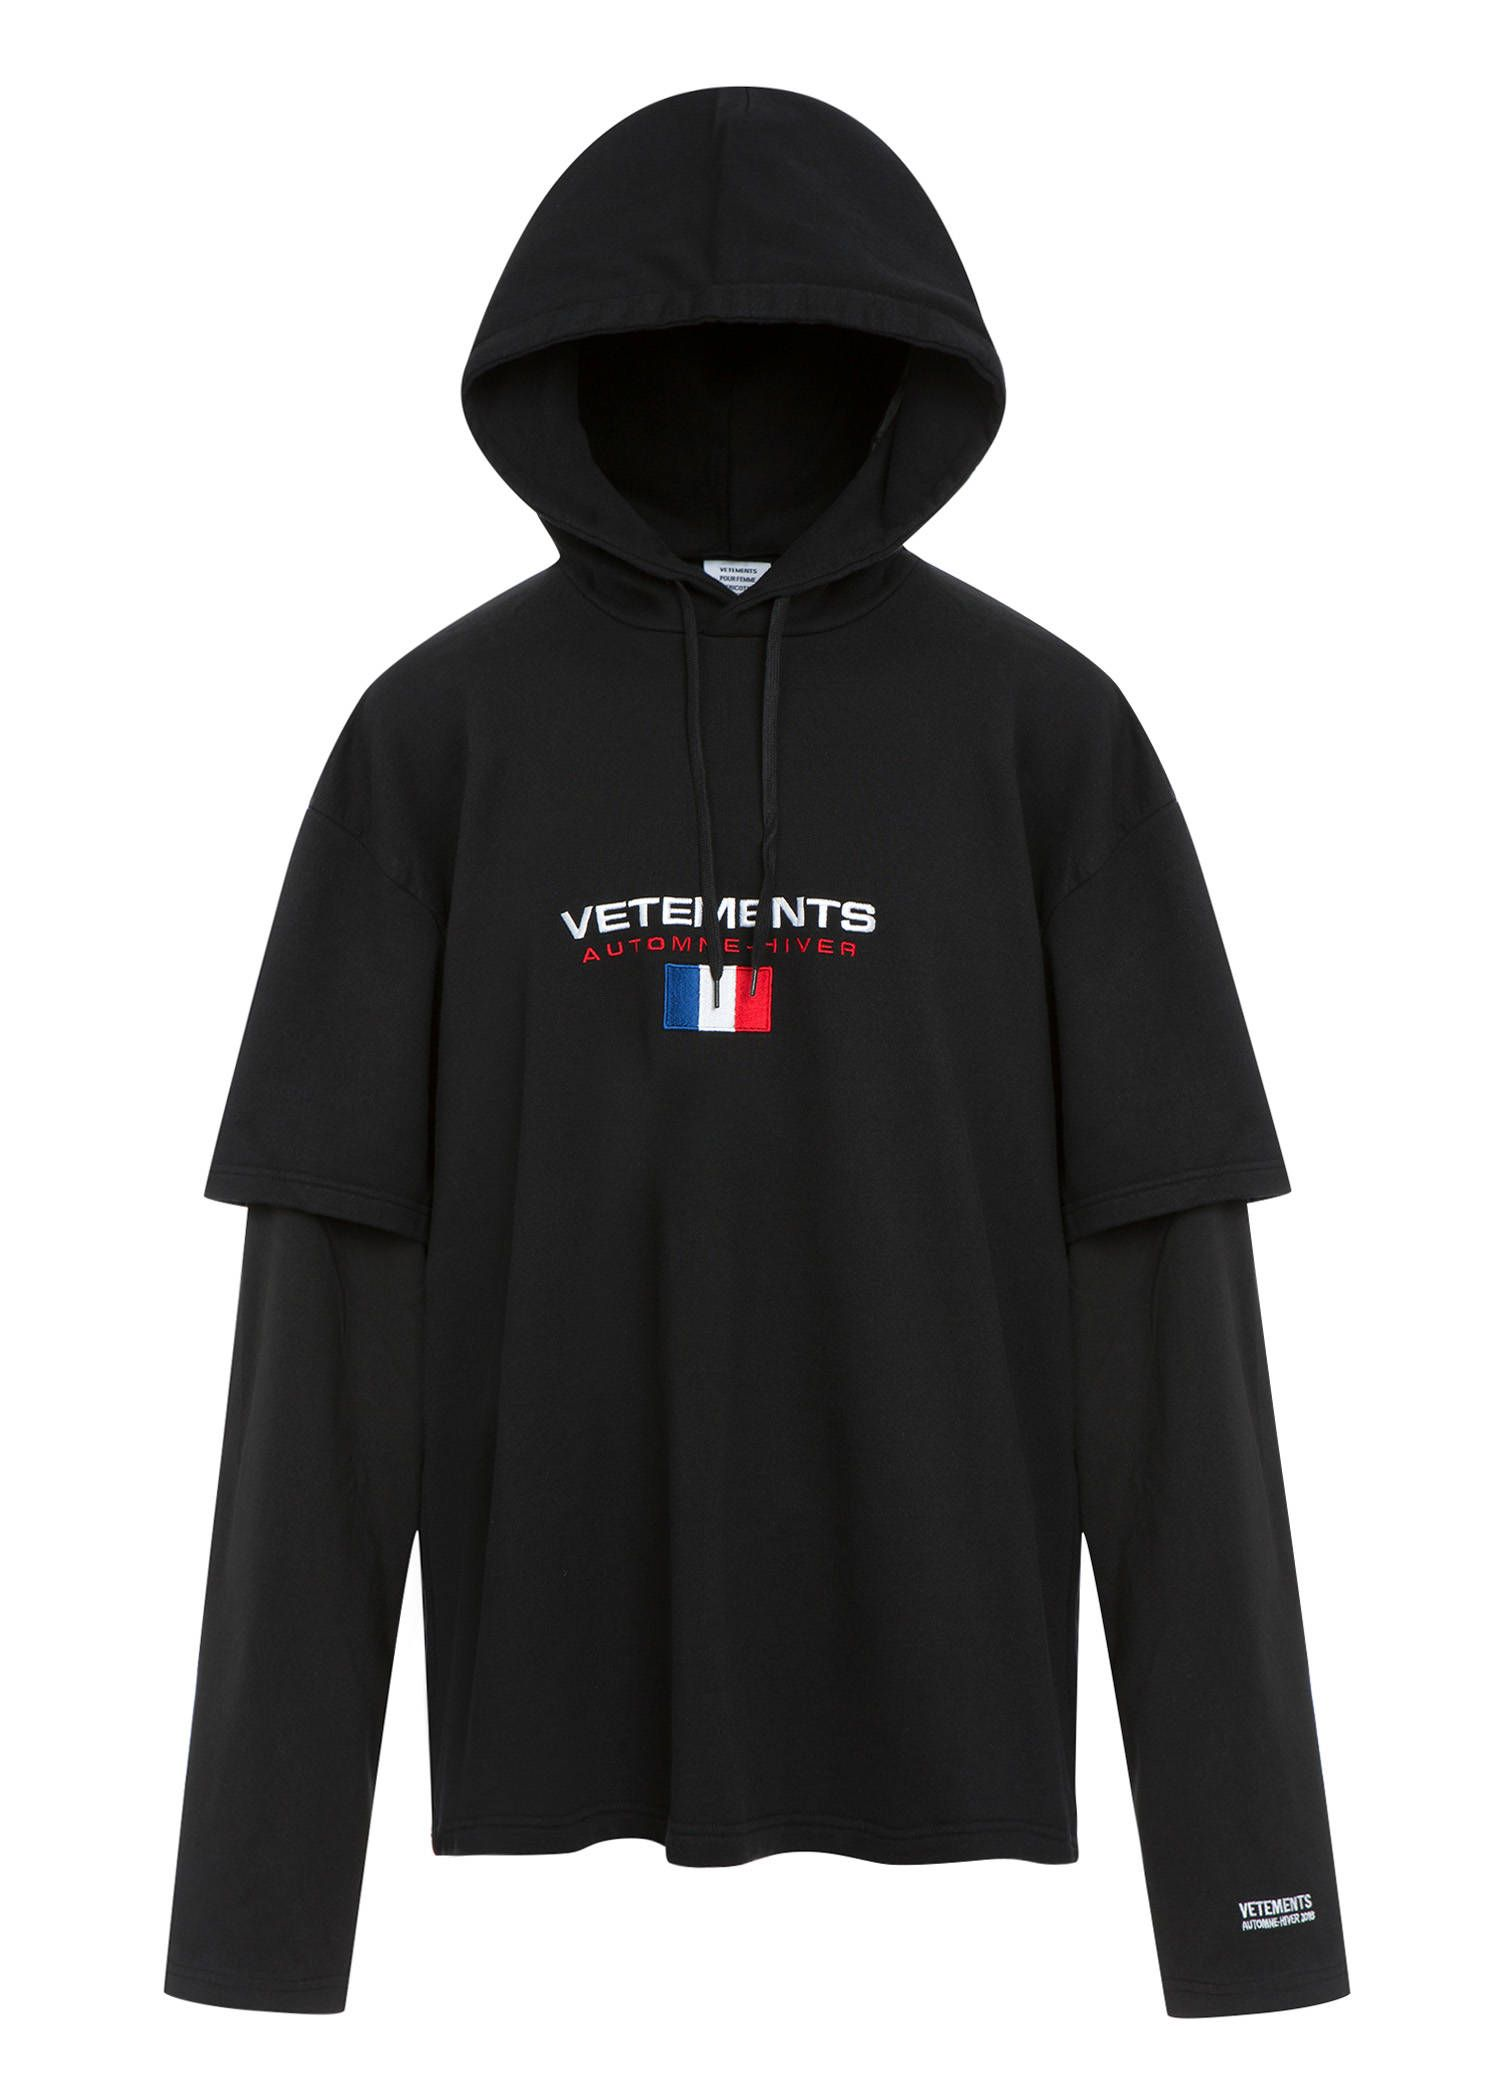 Cotton-blend hooded sweatshirt VETEMENTS Cheap Sale Geniue Stockist tpF4Q